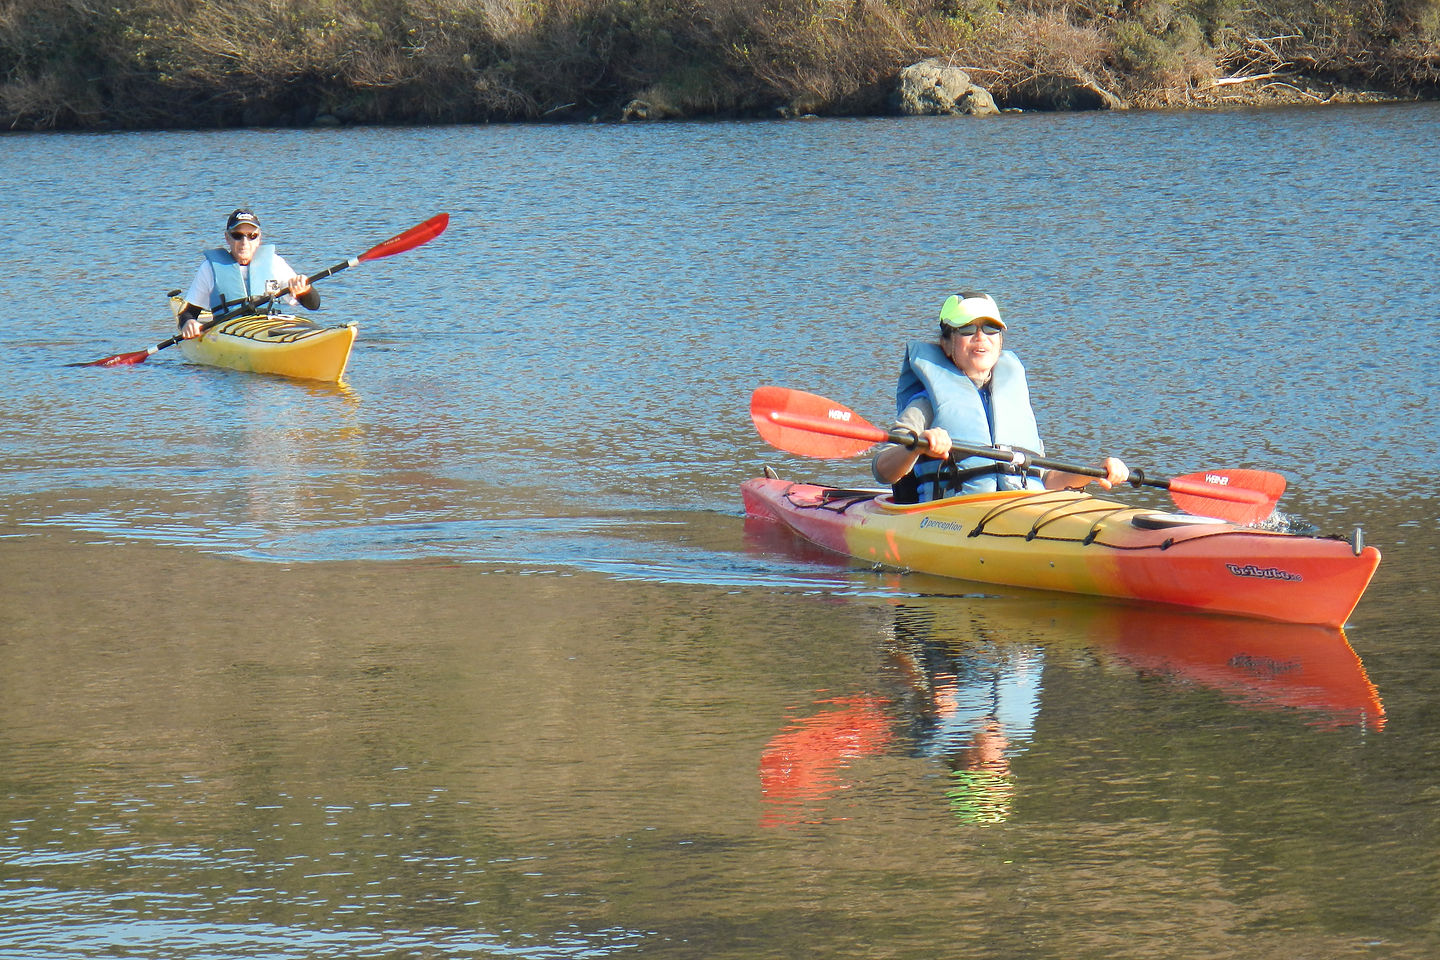 Hilda and Paul on a Test Paddle